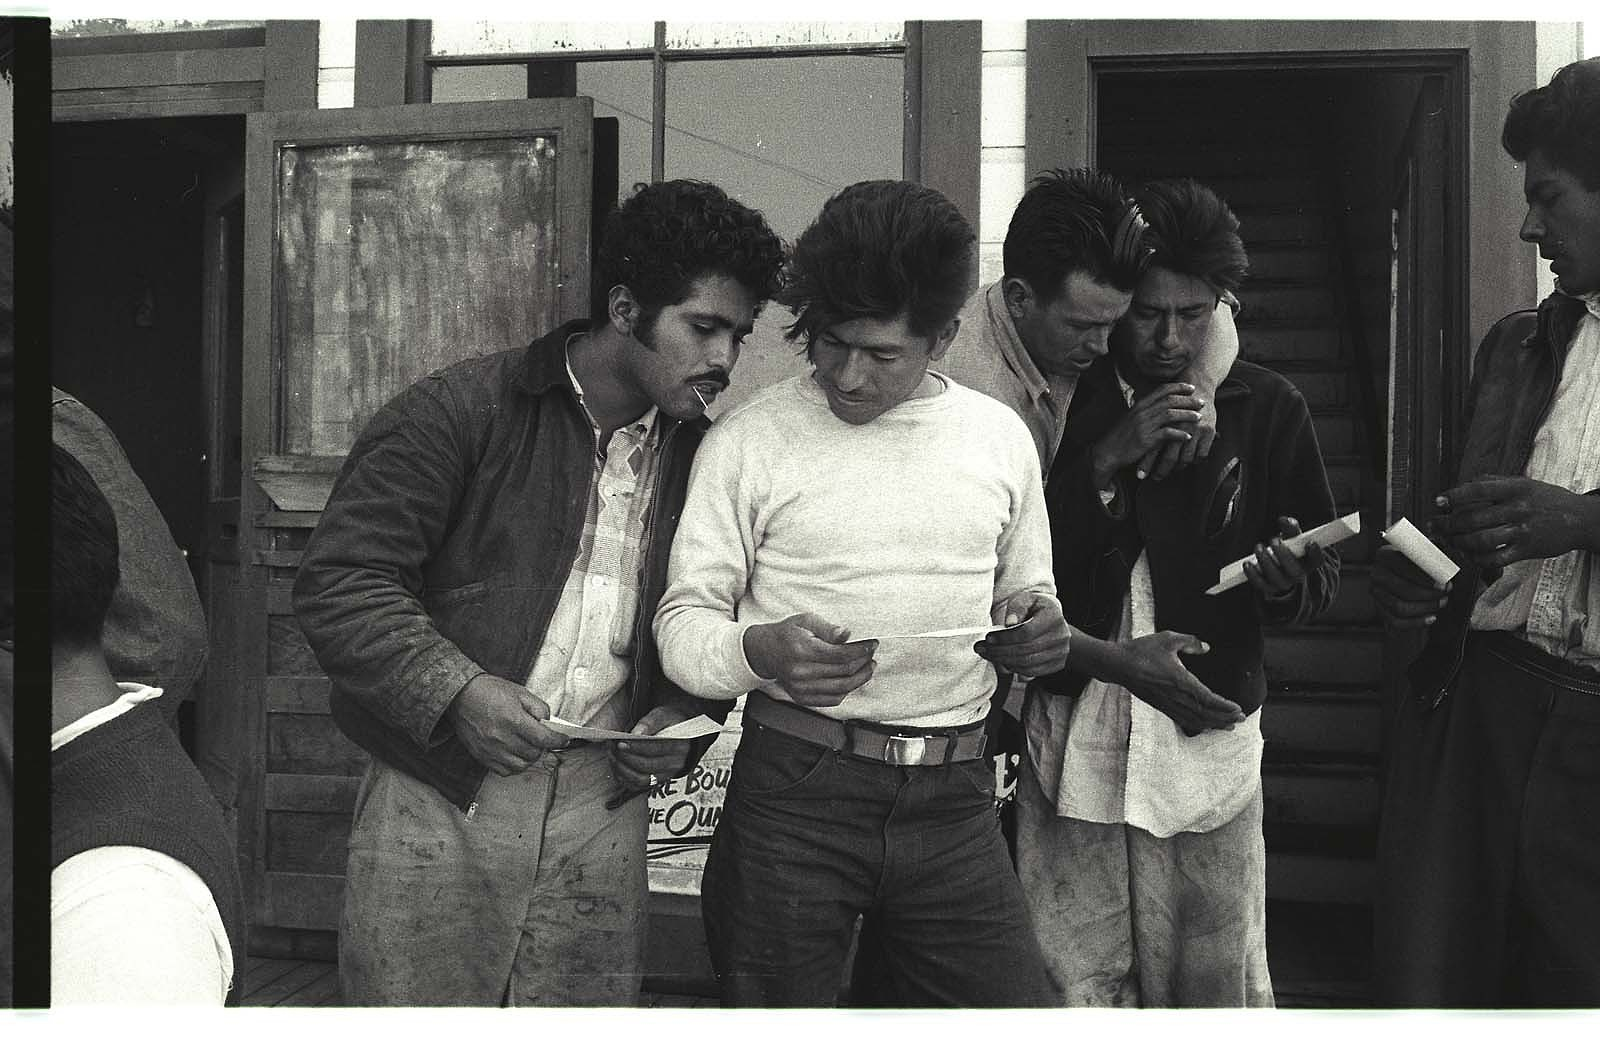 Braceros examine their paychecks outside of a building in Watsonville, California.